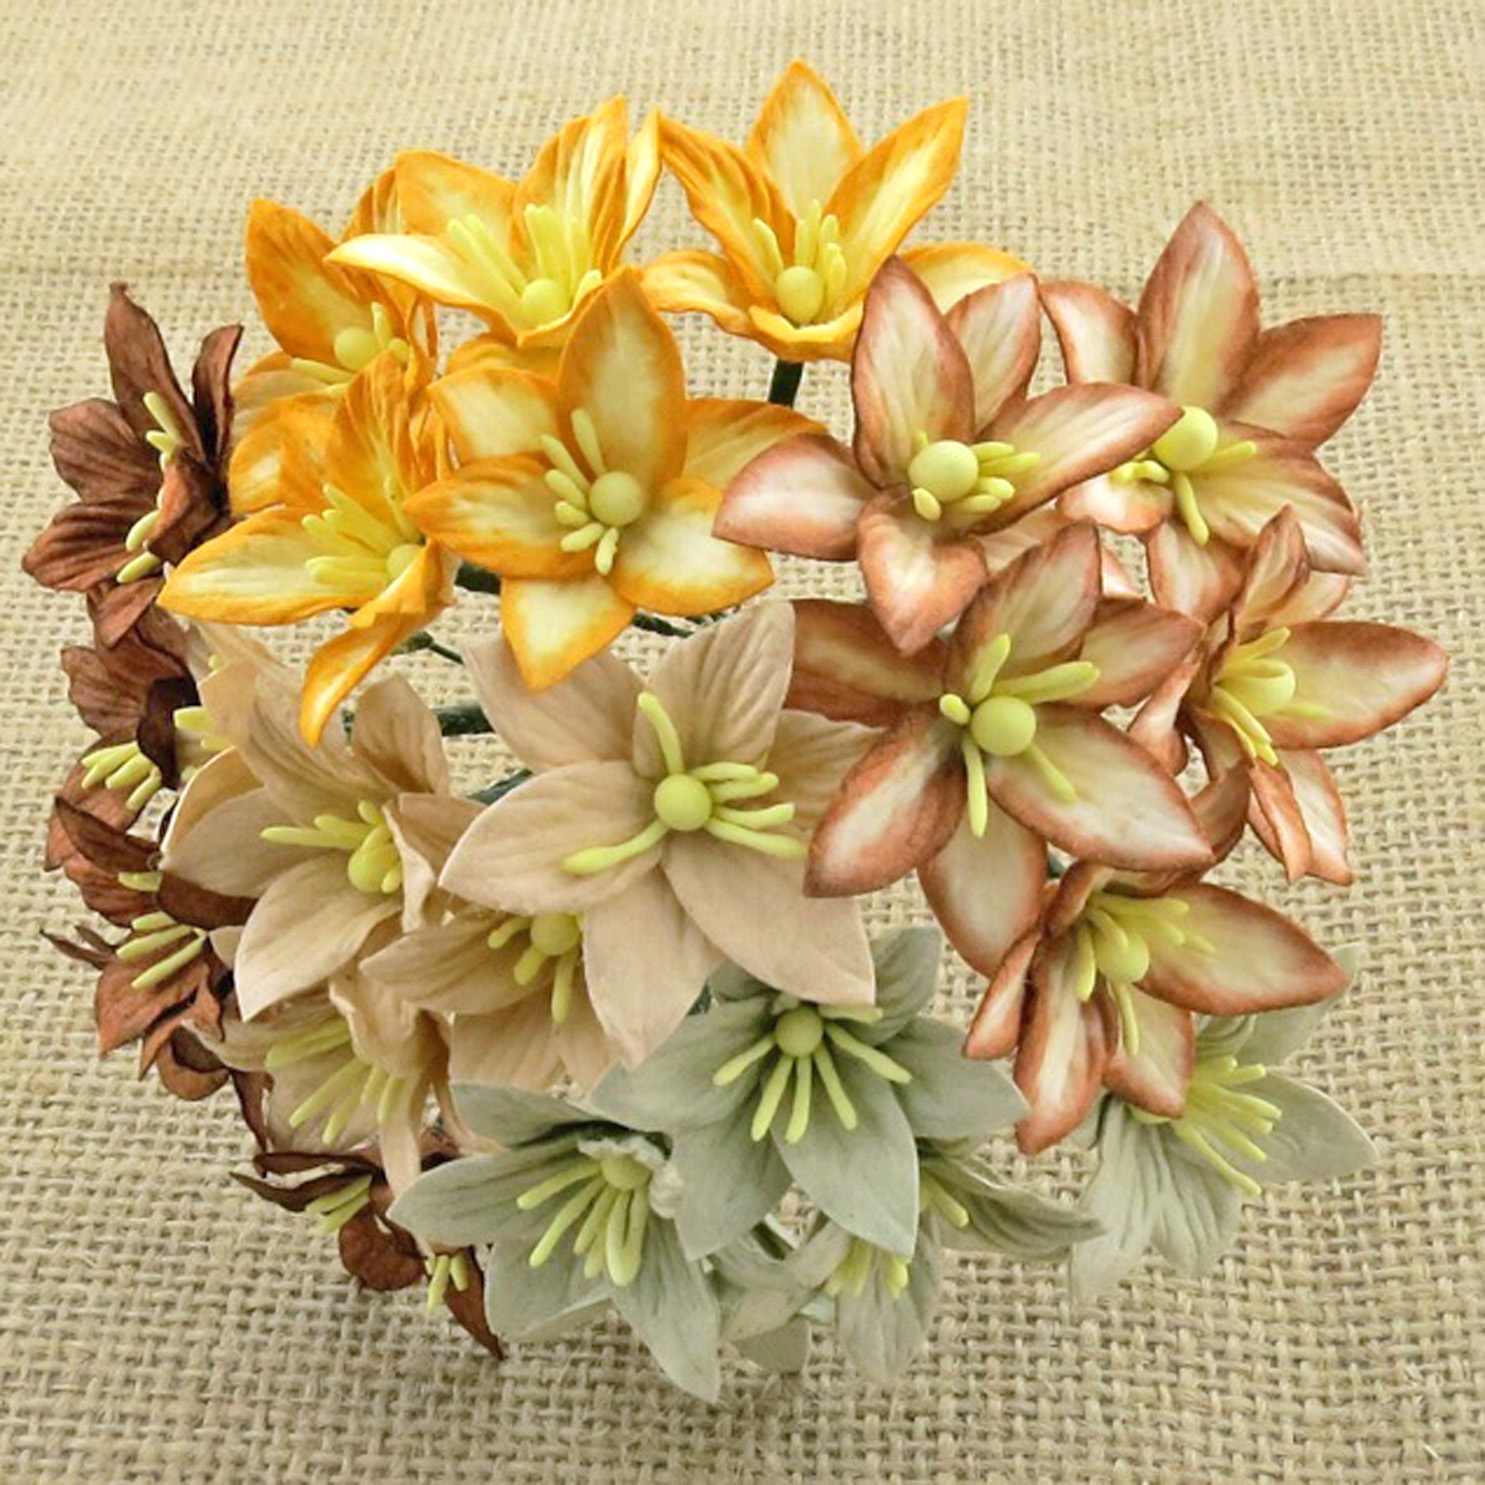 50 MIXED EARTH TONE MULBERRY PAPER LILY FLOWERS - 5 COLOR